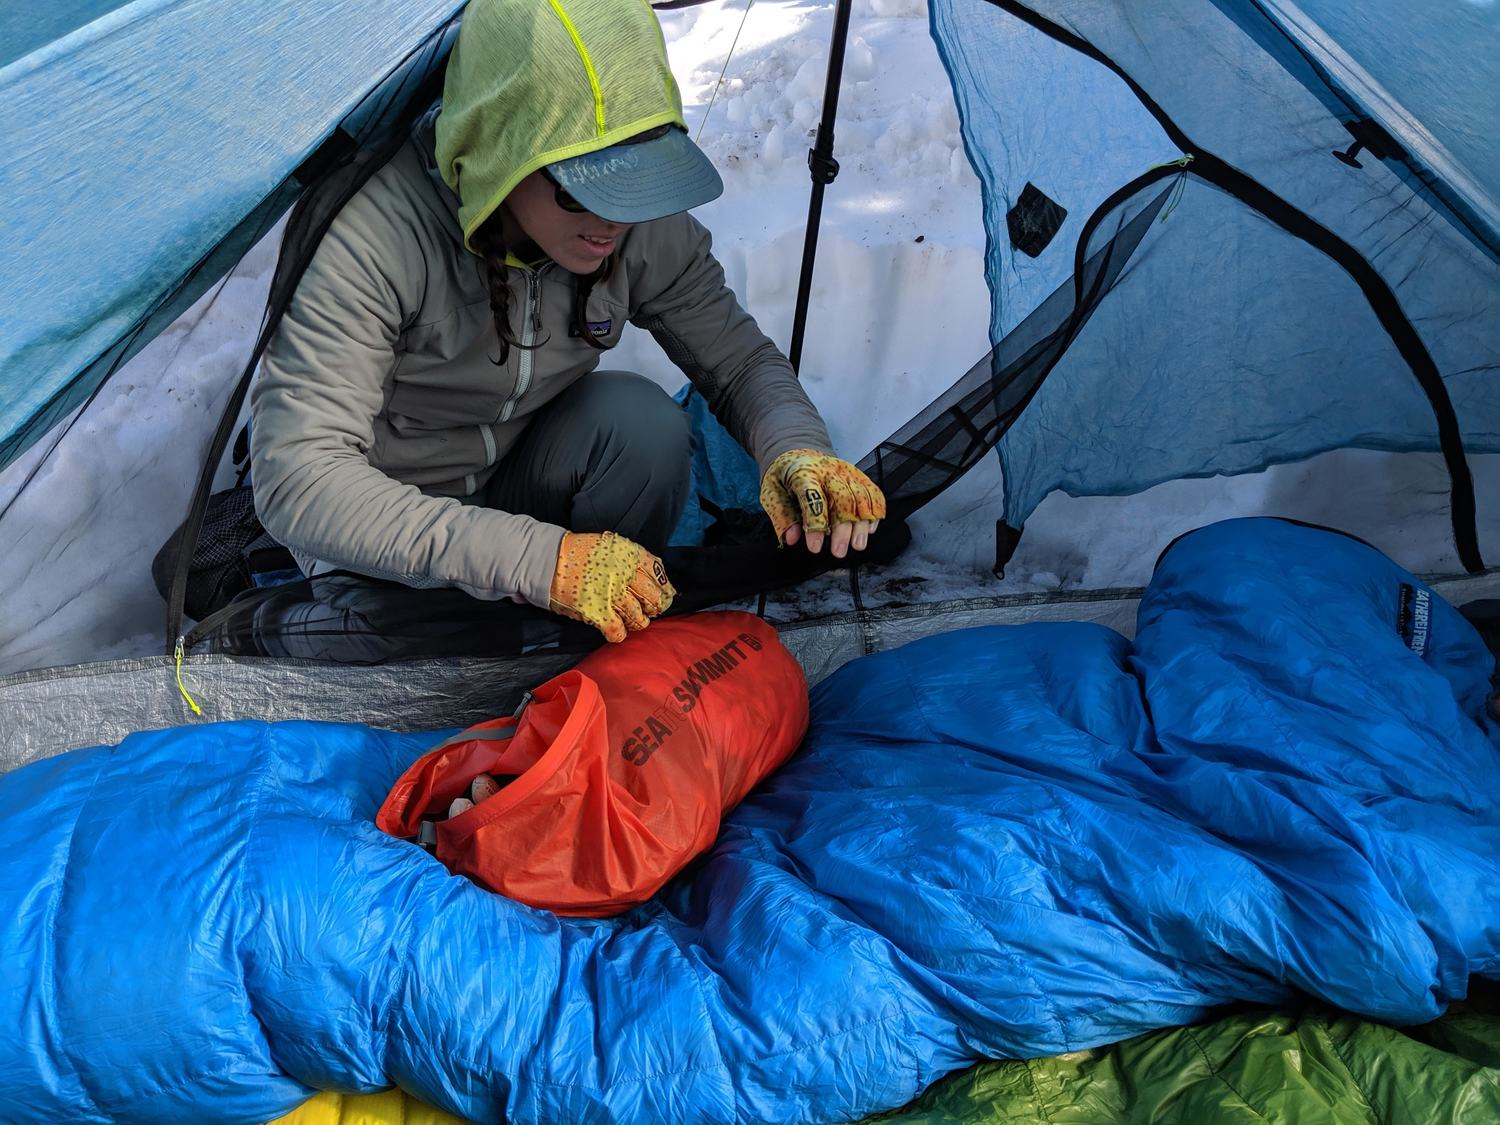 - Read the FUll Backpacking Sleeping Bag StorY